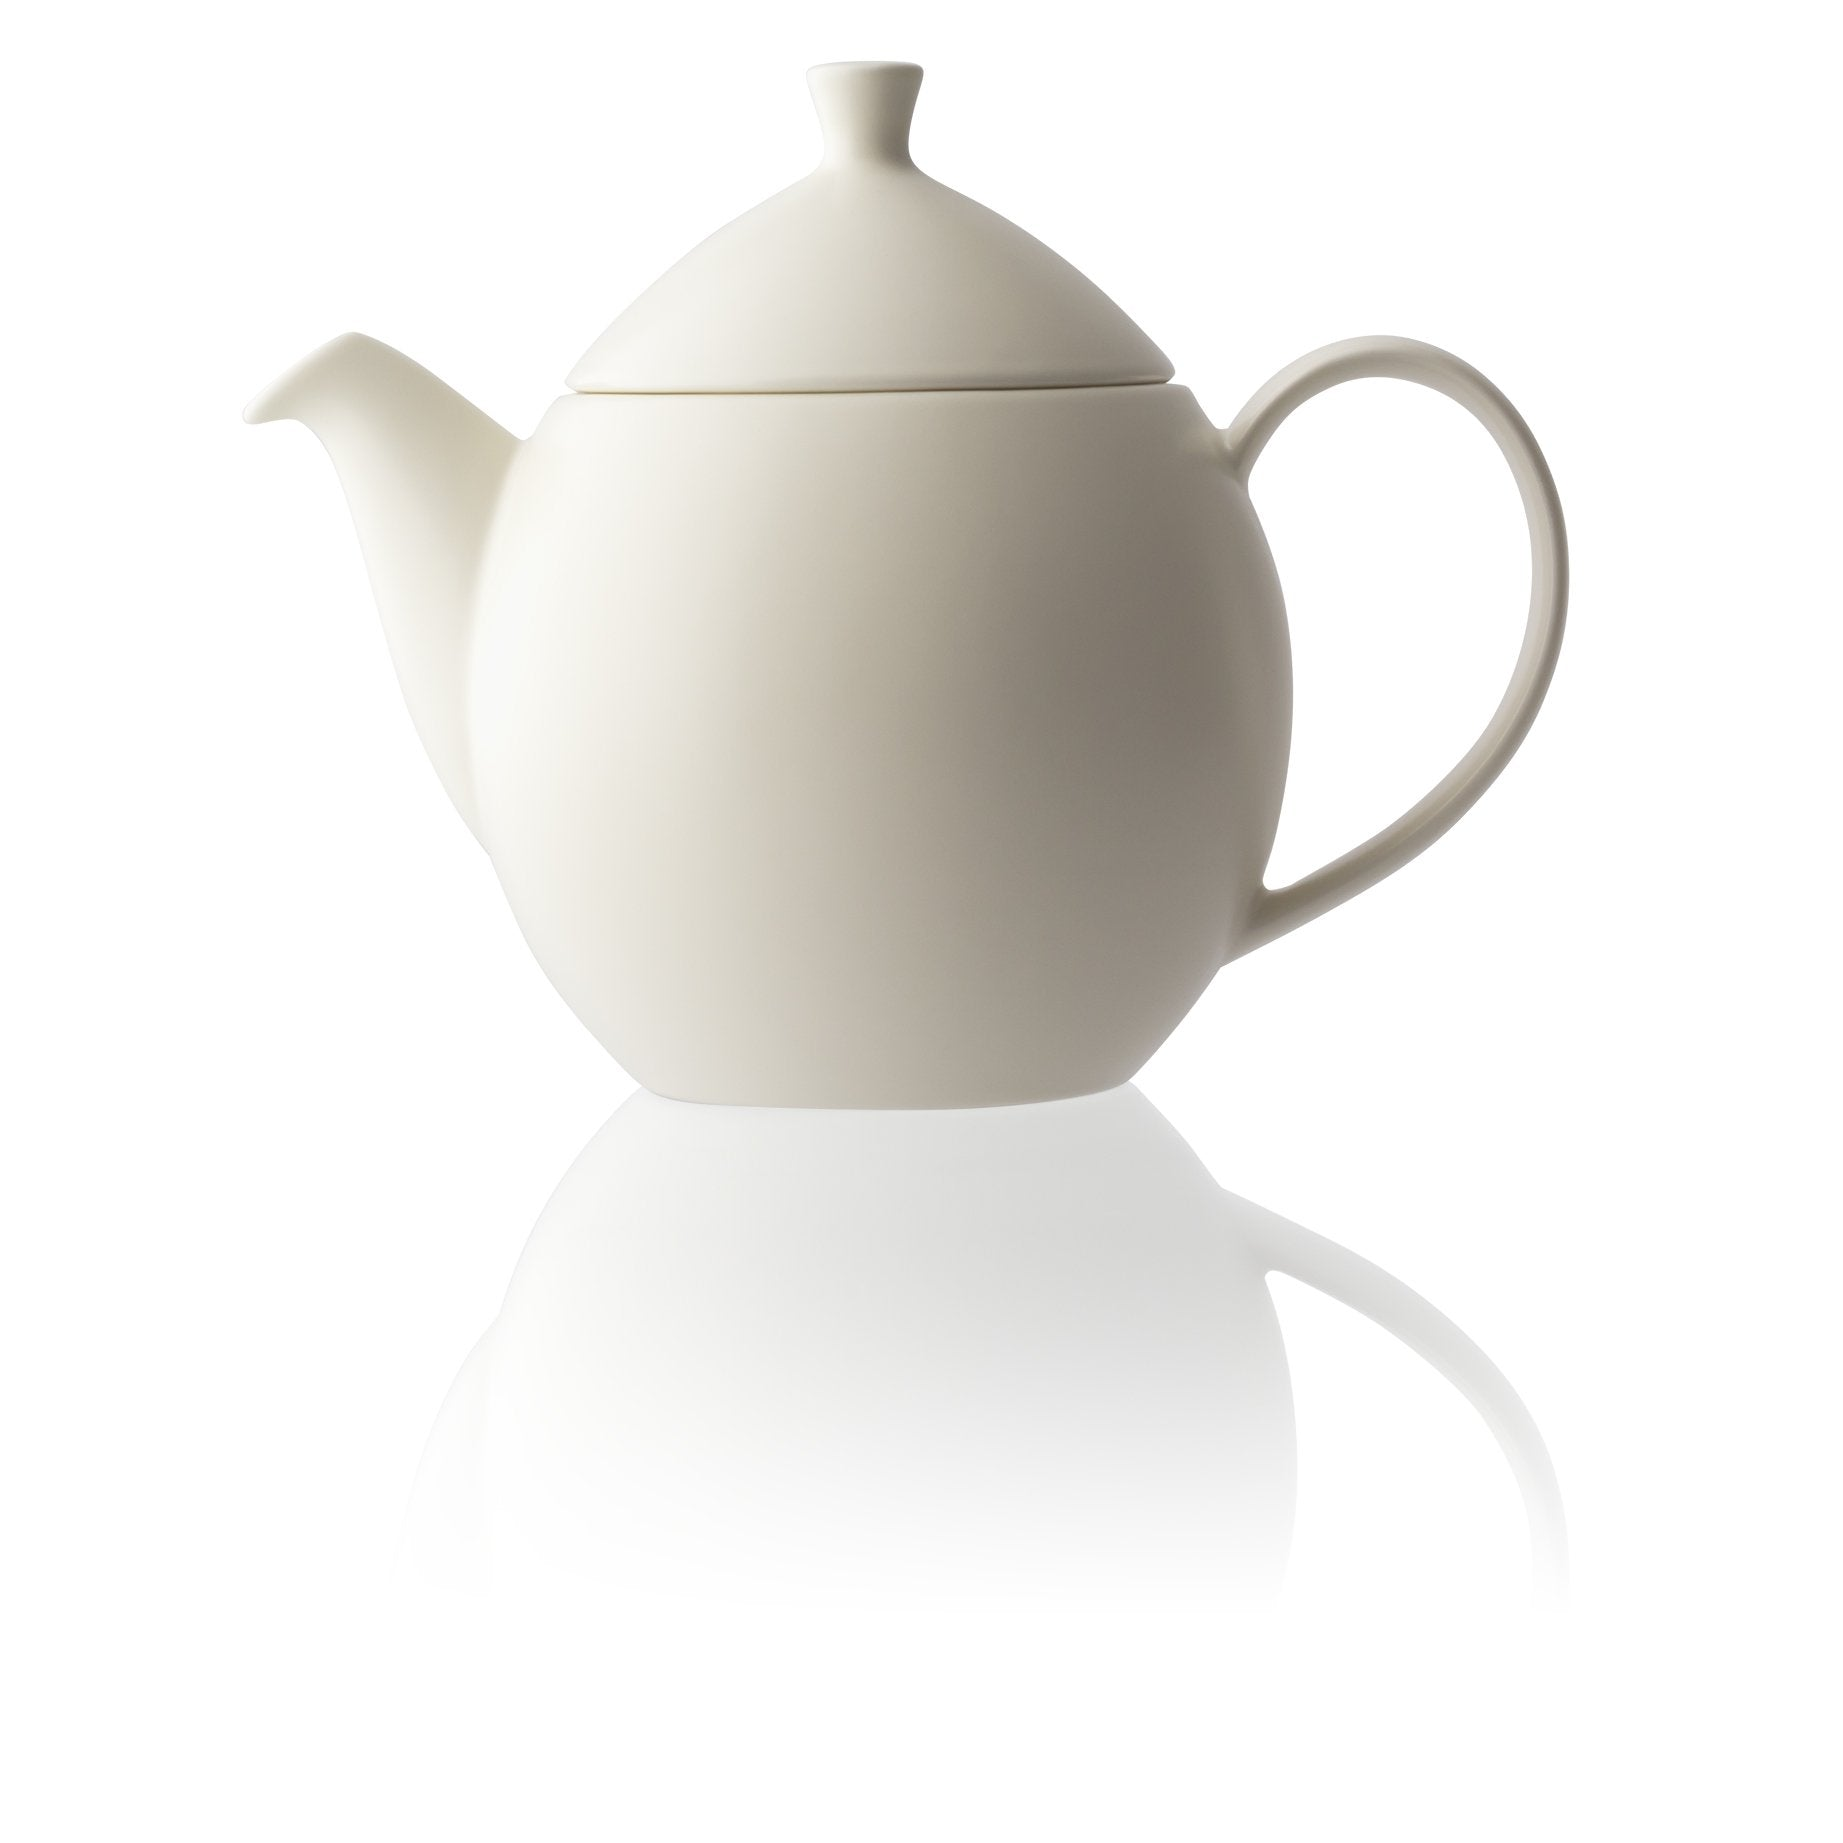 TeaLula 32 oz white satin finish curve Dew Teapot with large thin curve handle and detachable tea pot lid